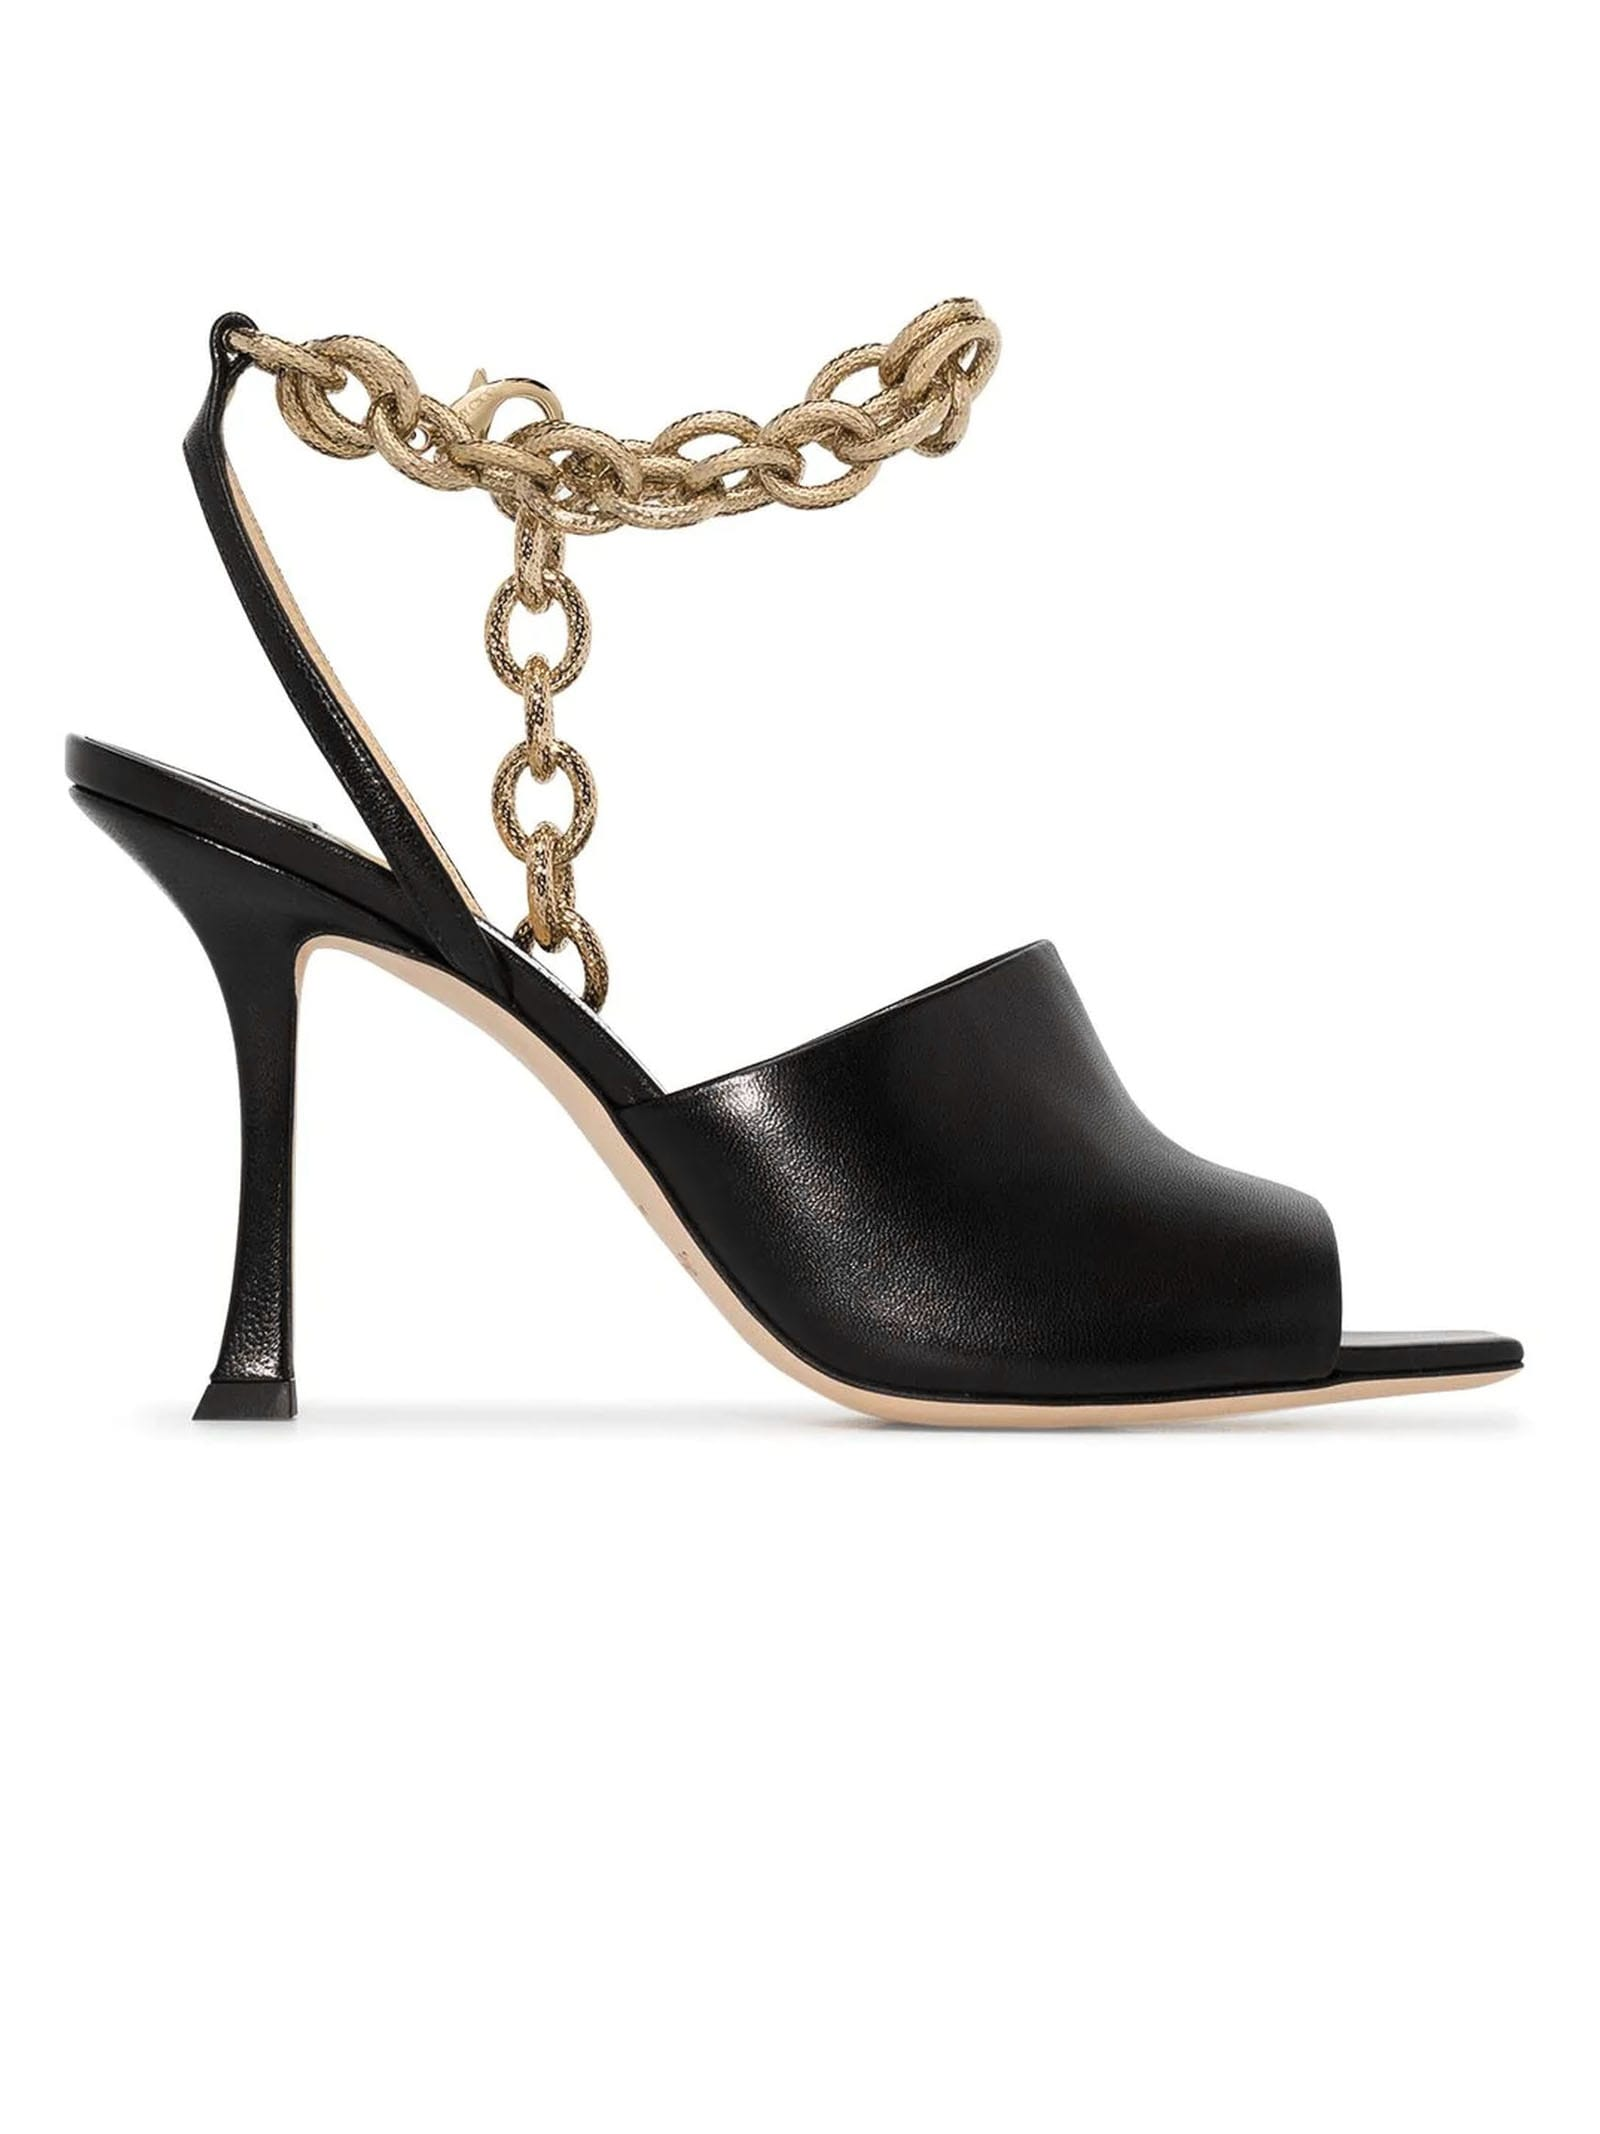 Buy Jimmy Choo Black Leather Sae Sandal online, shop Jimmy Choo shoes with free shipping